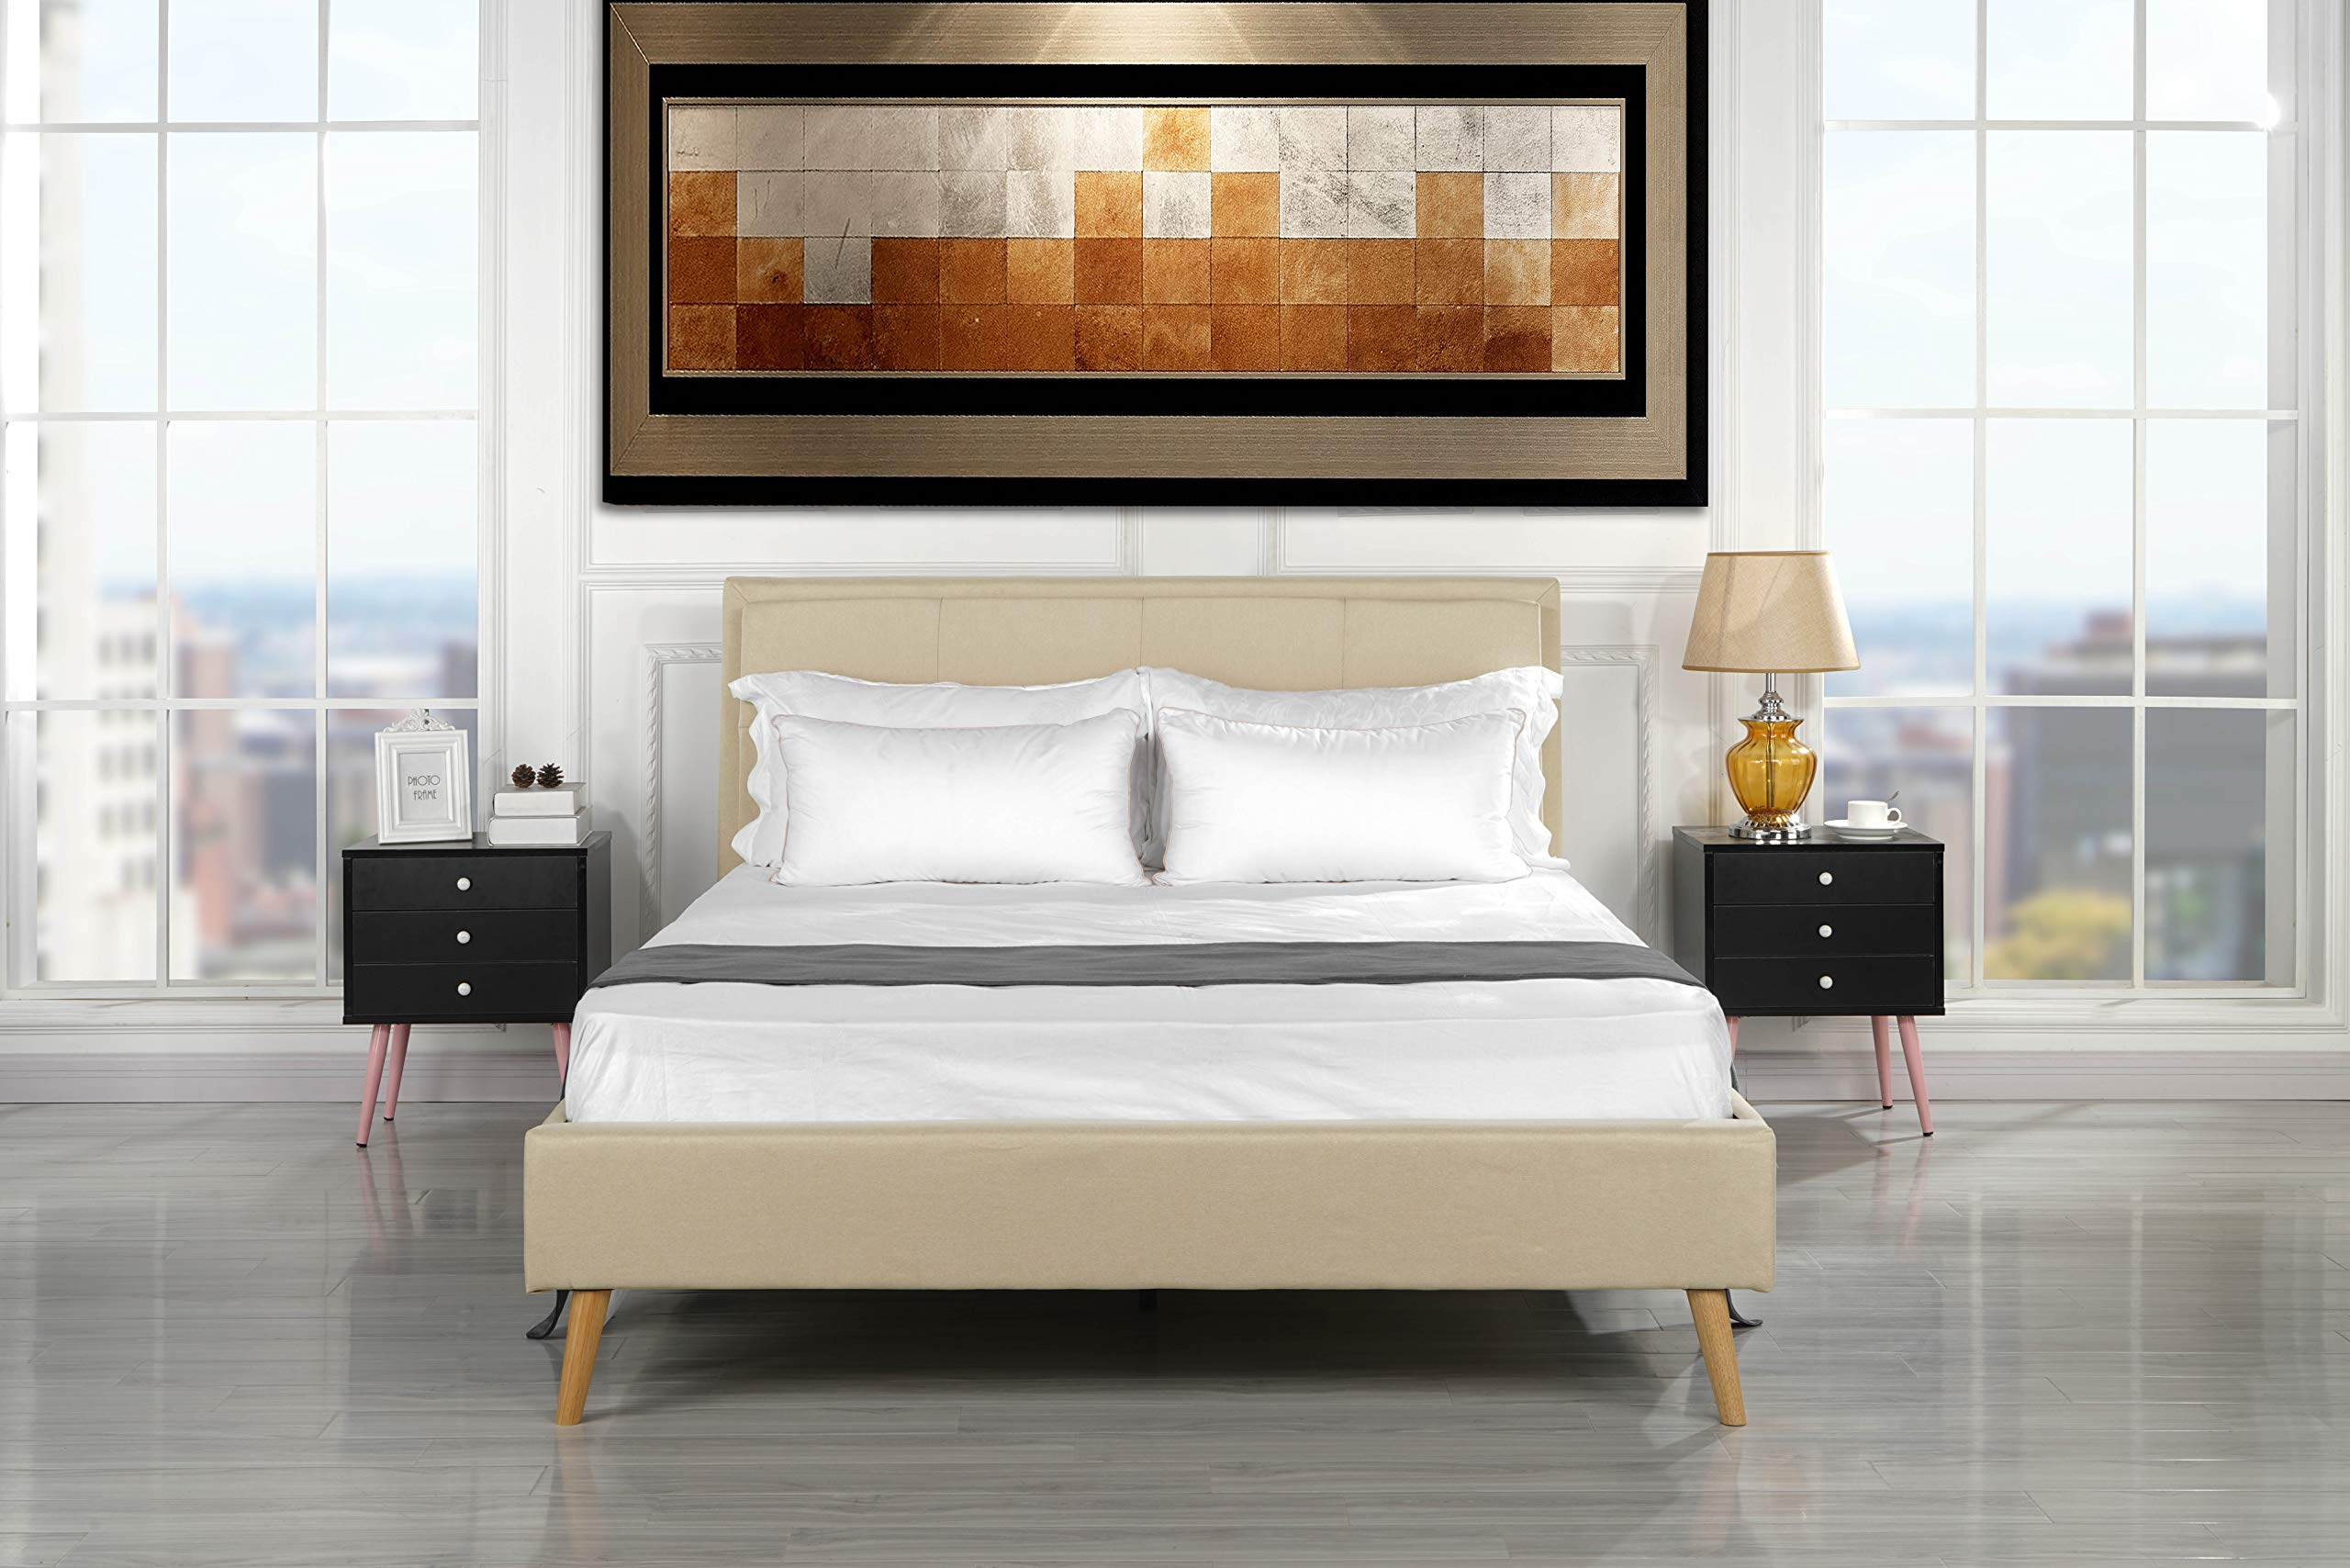 Mid Century Modern Upholstered Bed Frame with Tufted Headboard (King, Beige)